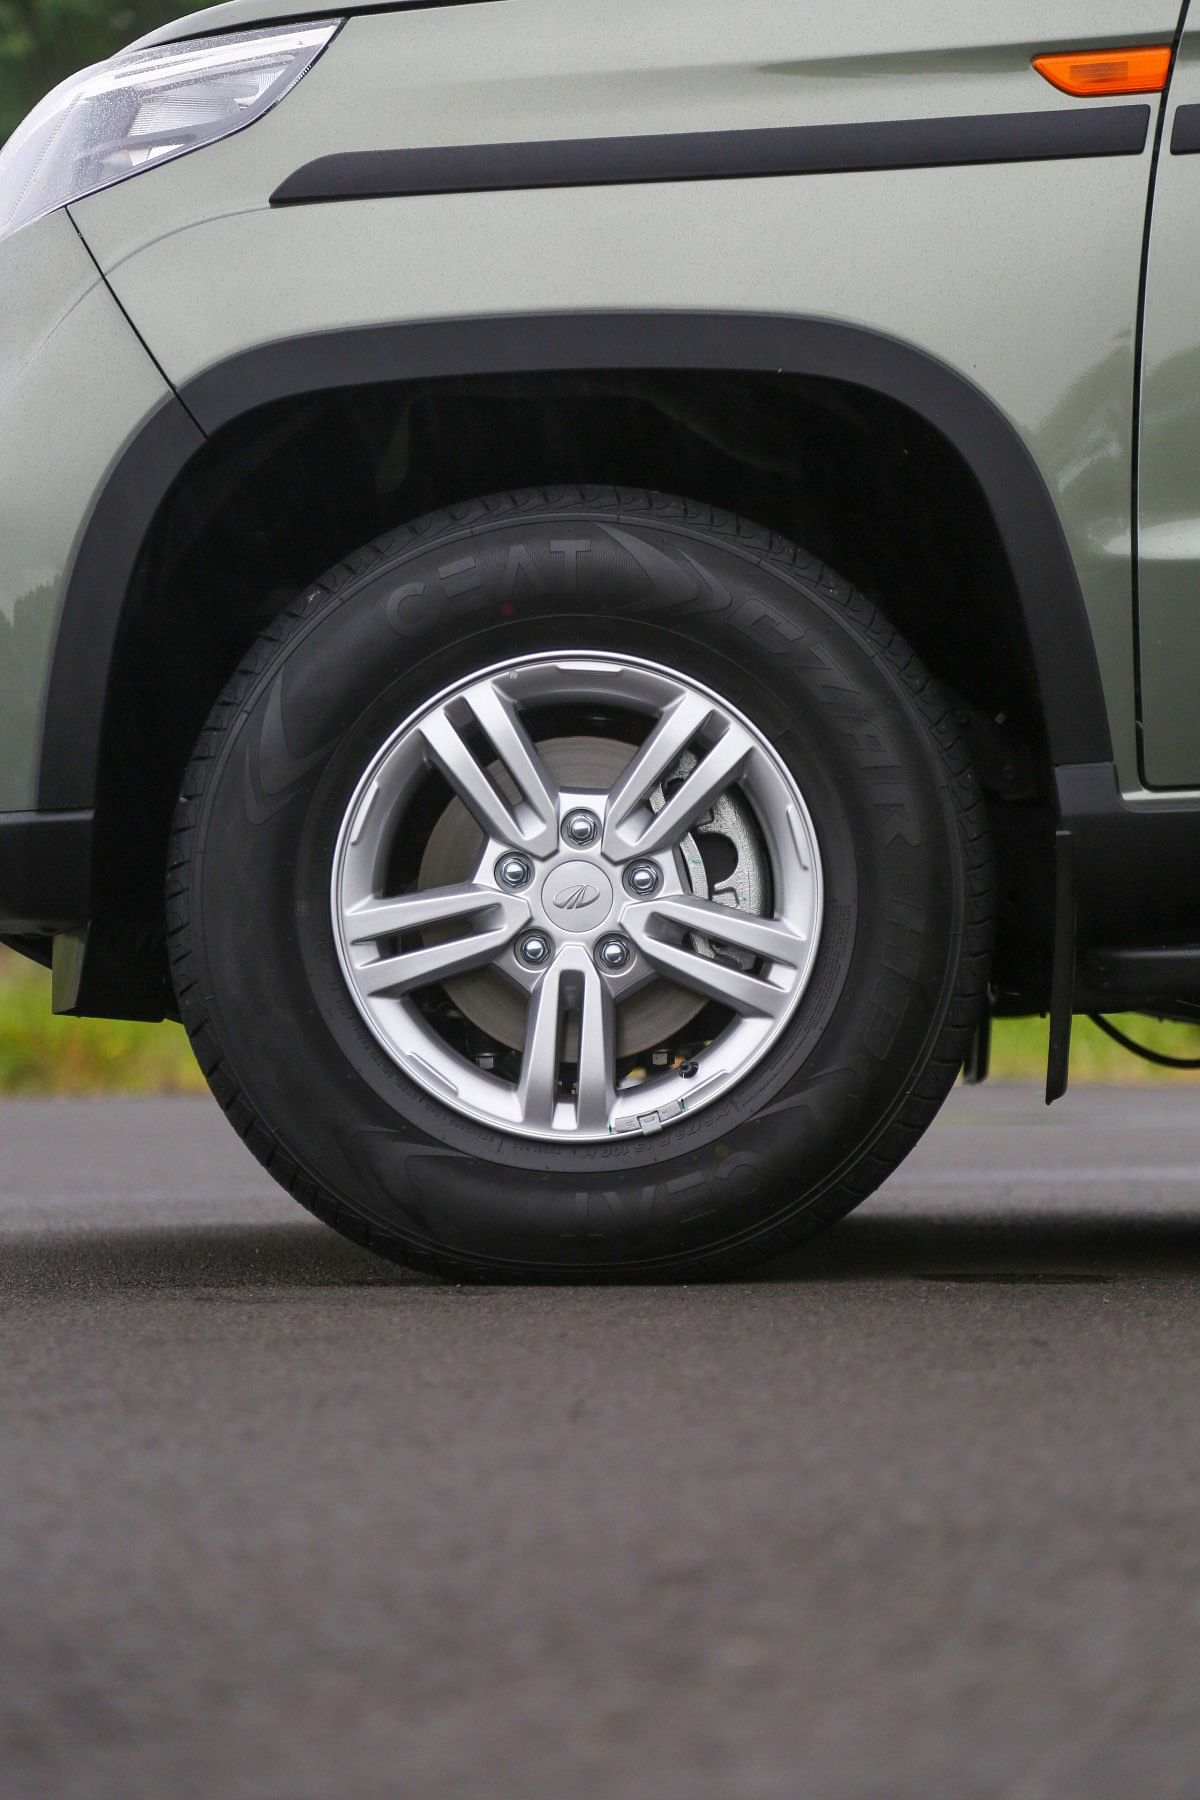 Trapezoidal wheel arches and plastic cladding add some toughness to the Bolero Neo's looks